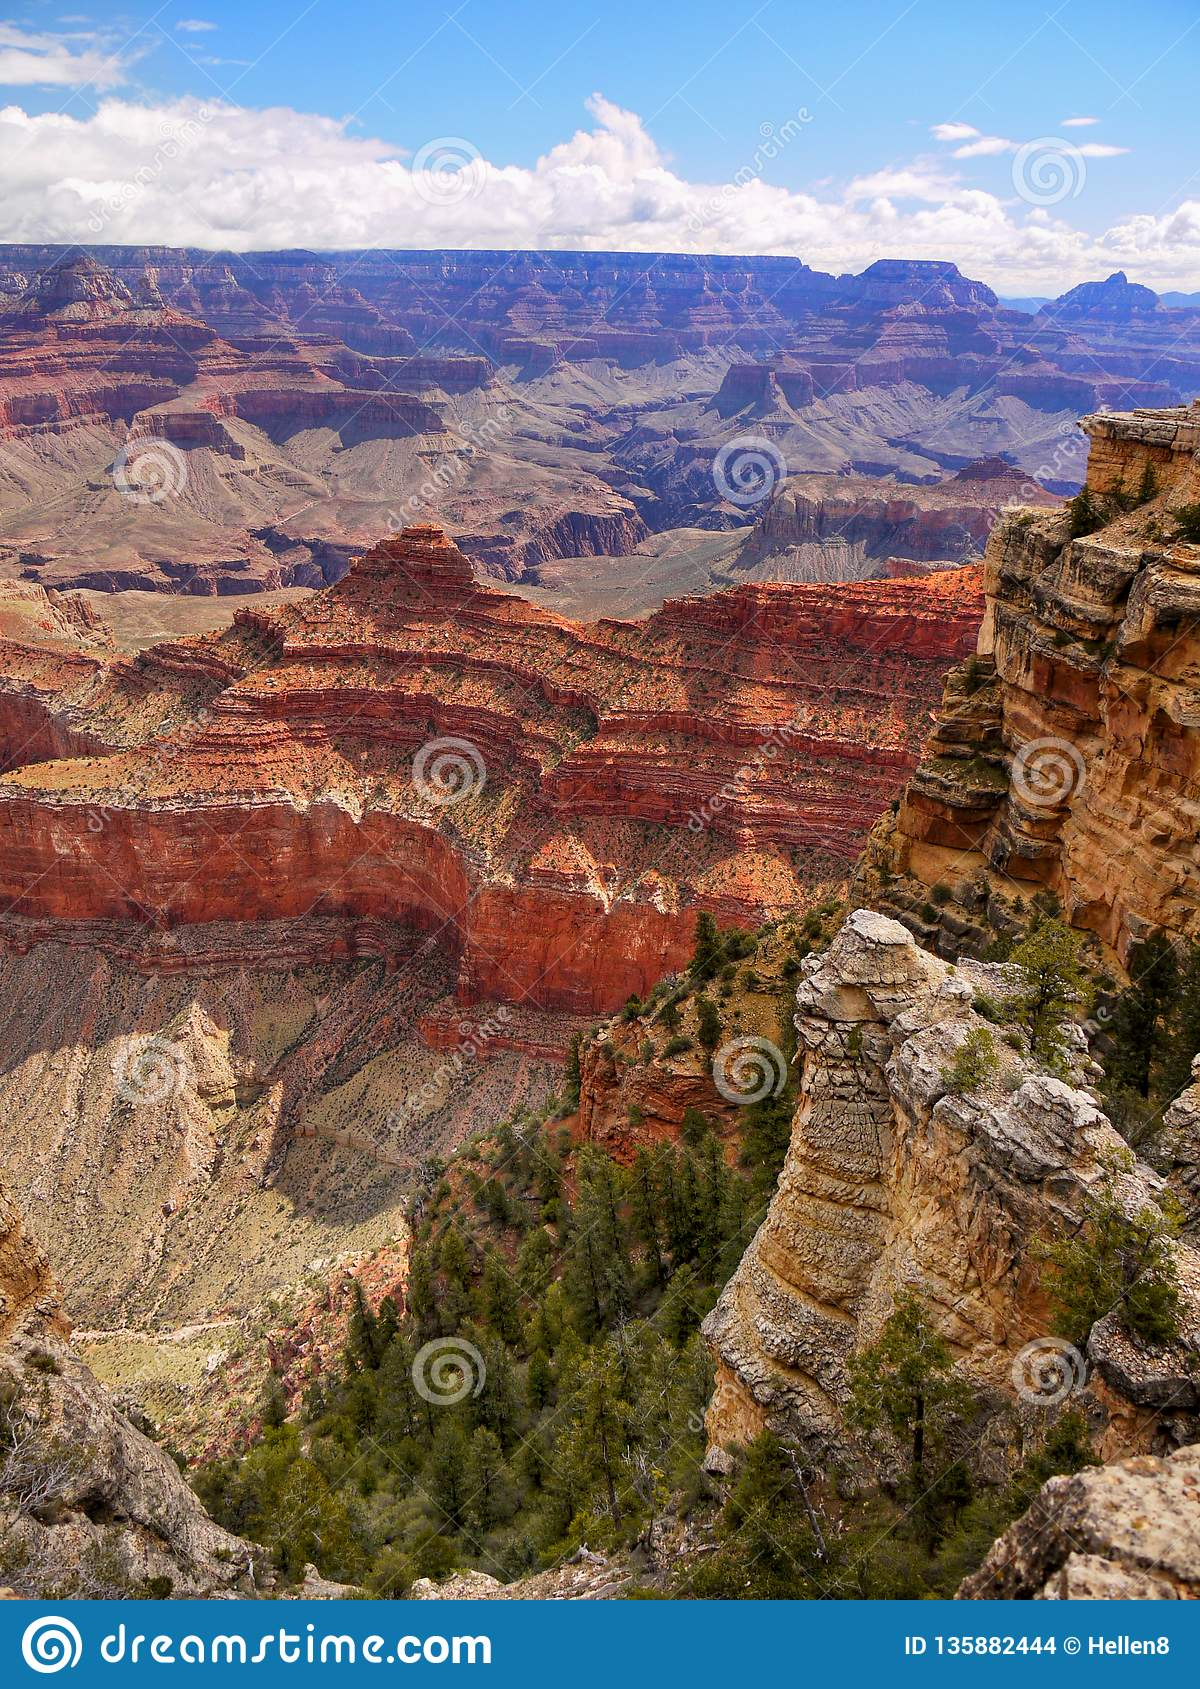 US National Parks, Grand Canyon National Park